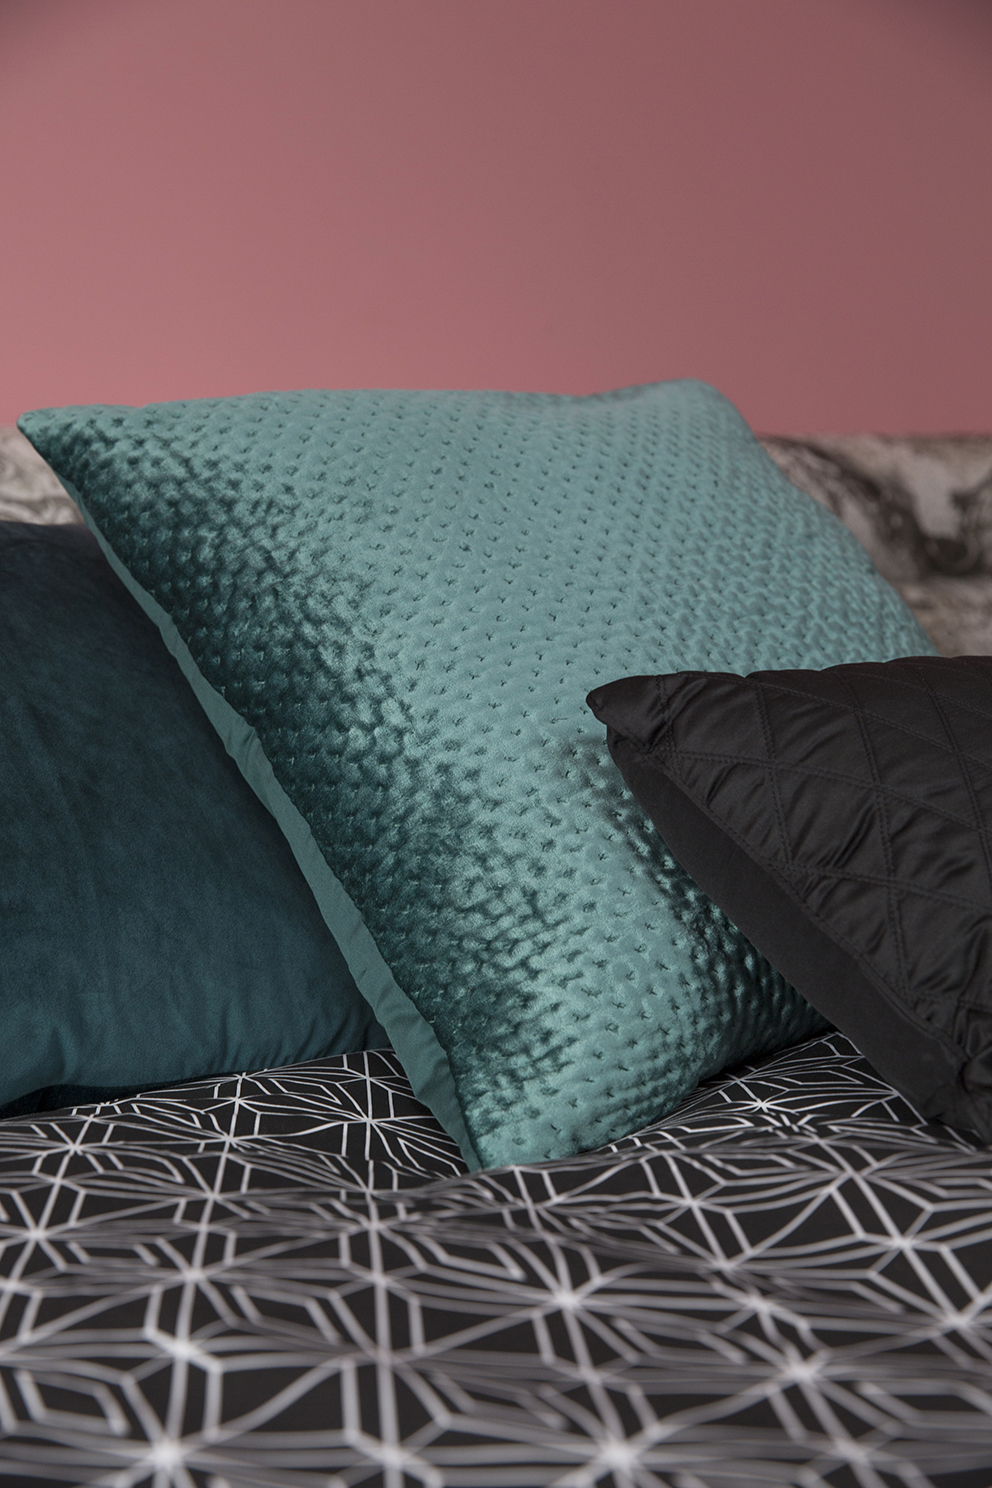 French For Pineapple Blog - Marks and Spencer Sleep Retreat - Chic Contemporary Bedroom